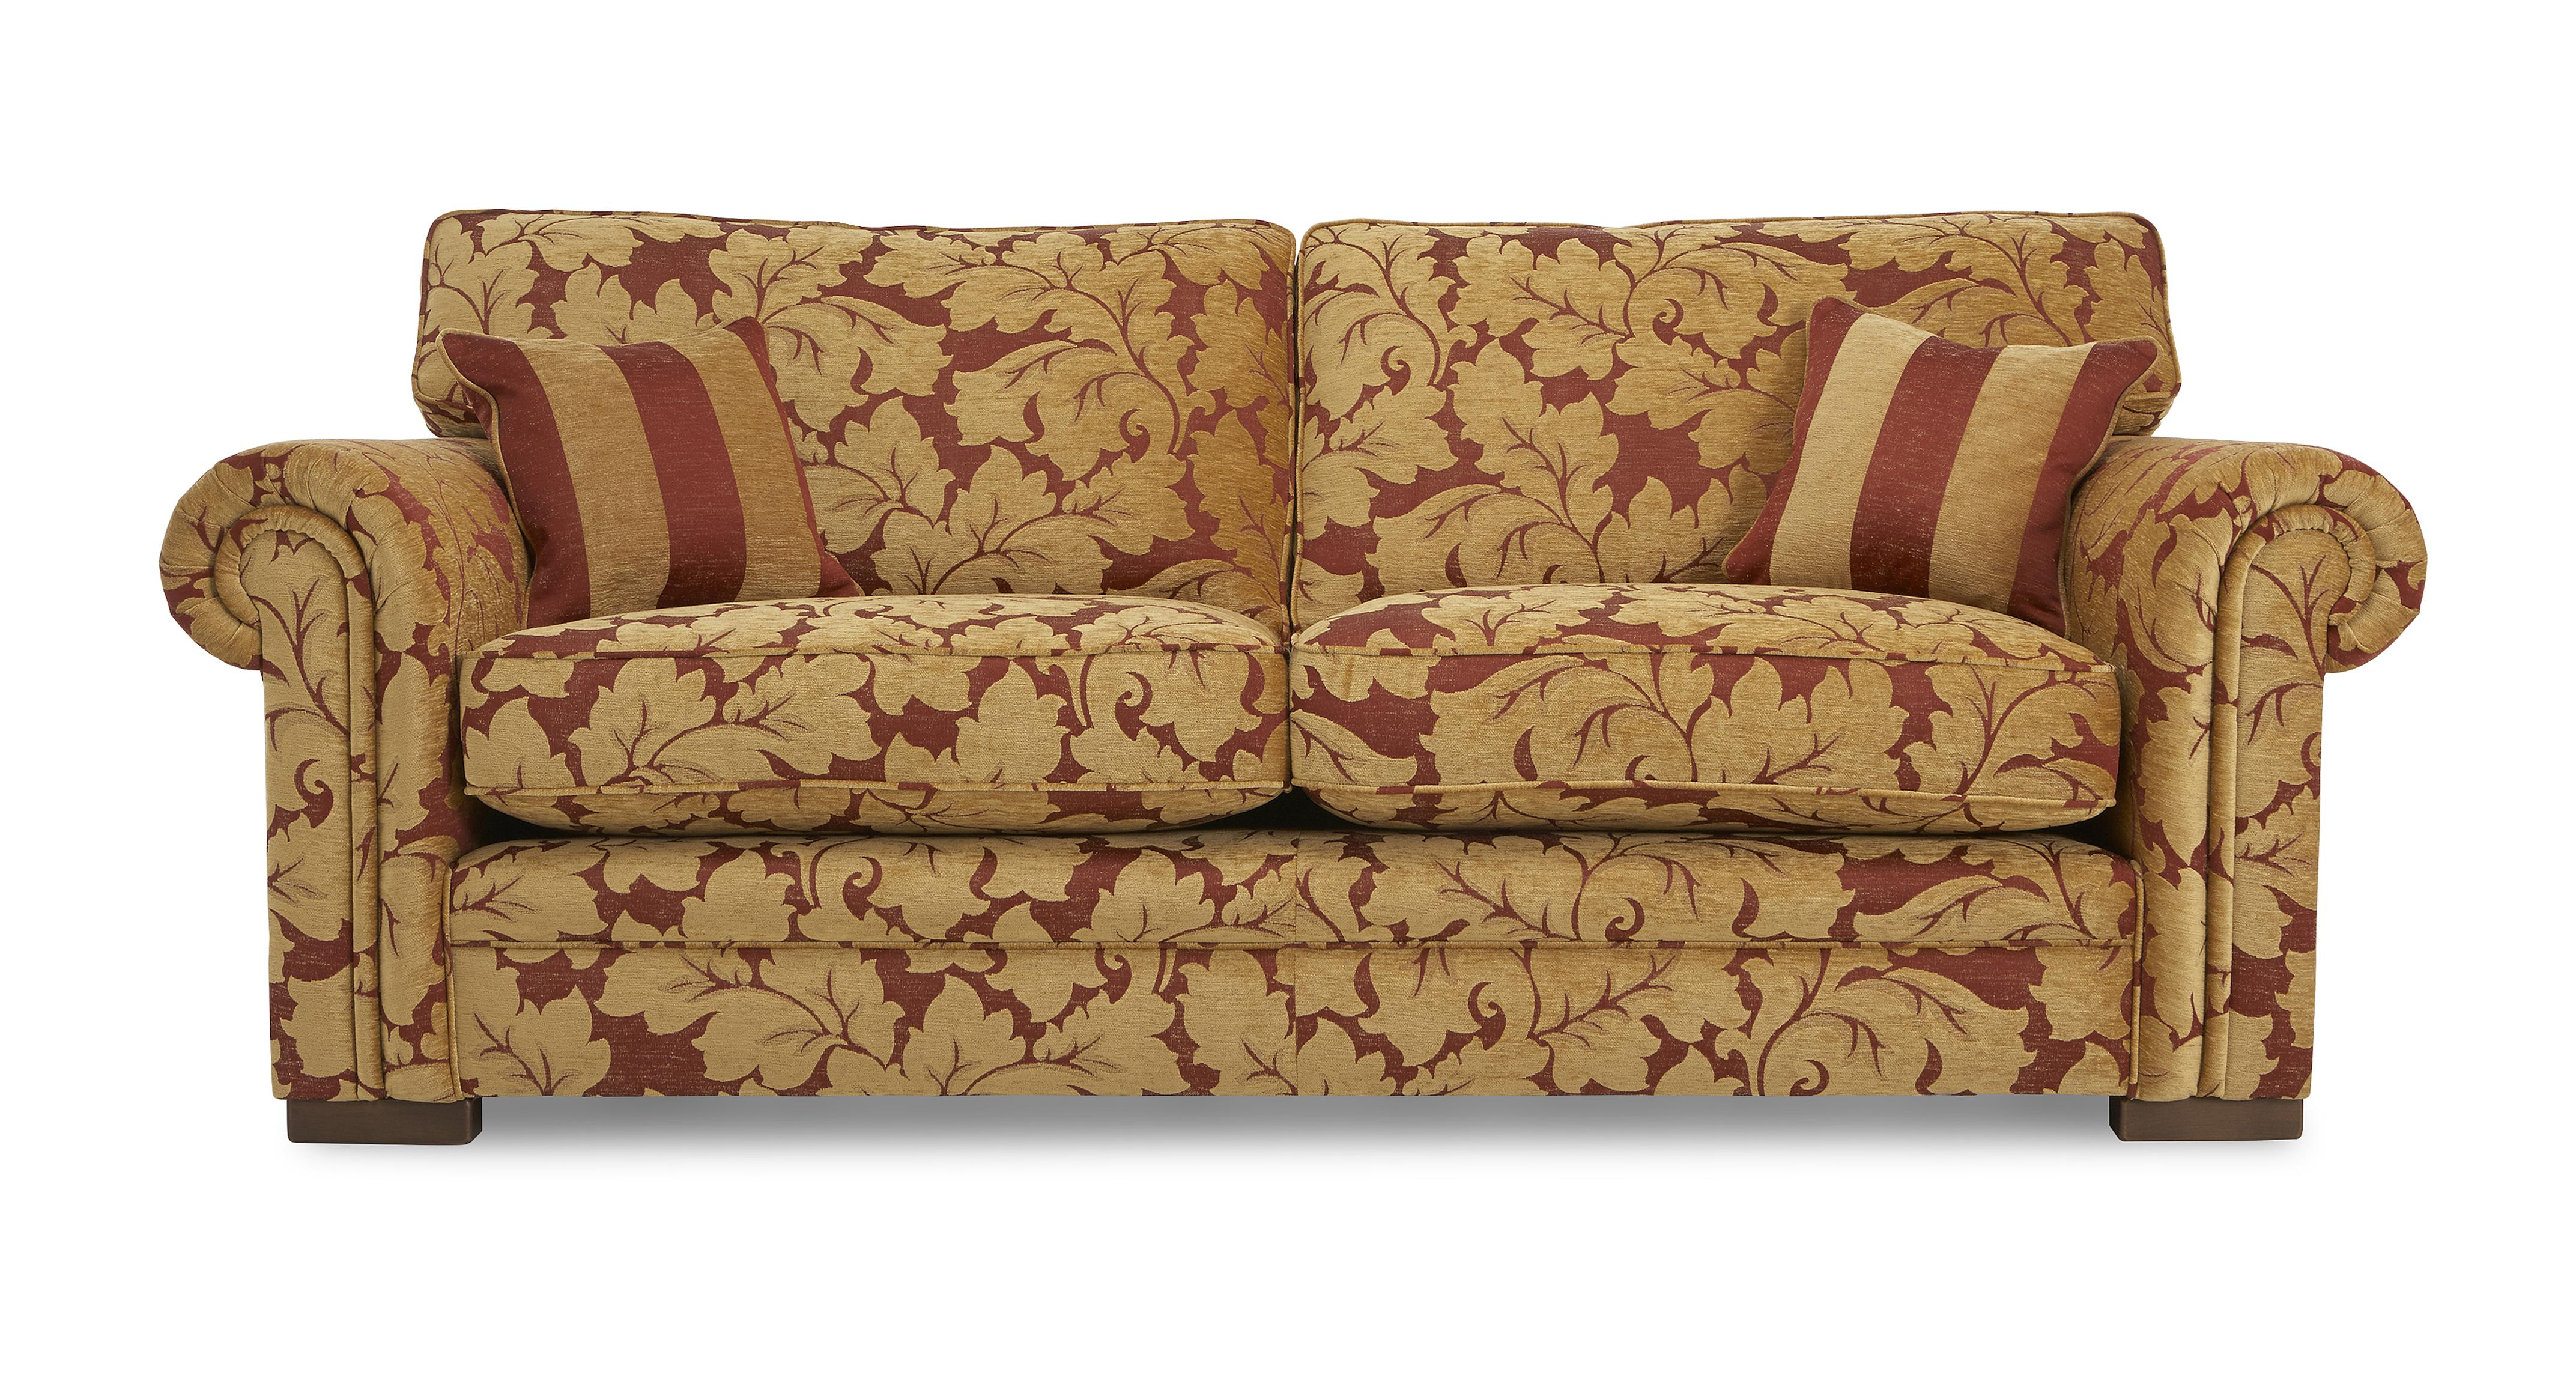 floral sectional sofa corner coffee table ideas landseer 3 seater dfs